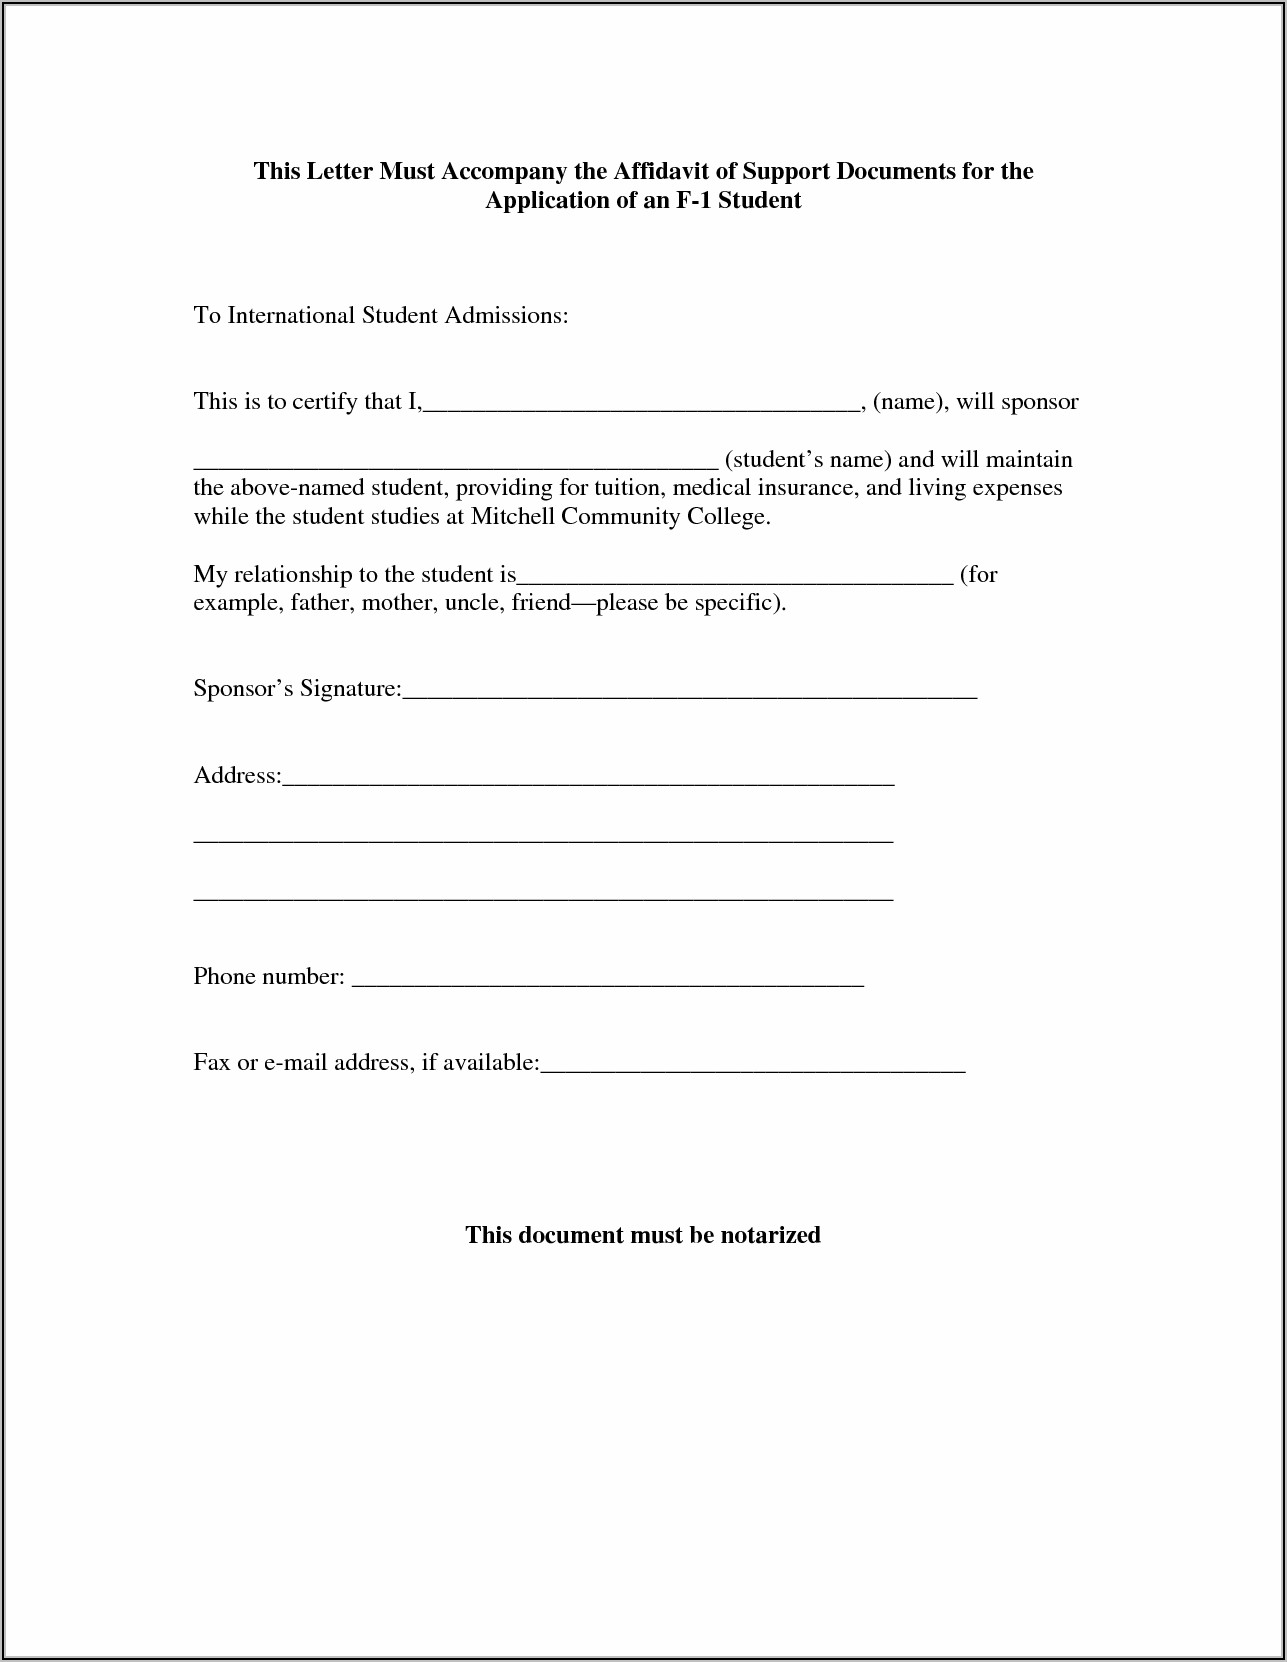 Affidavit Letter For Immigration Marriage Example Pdf